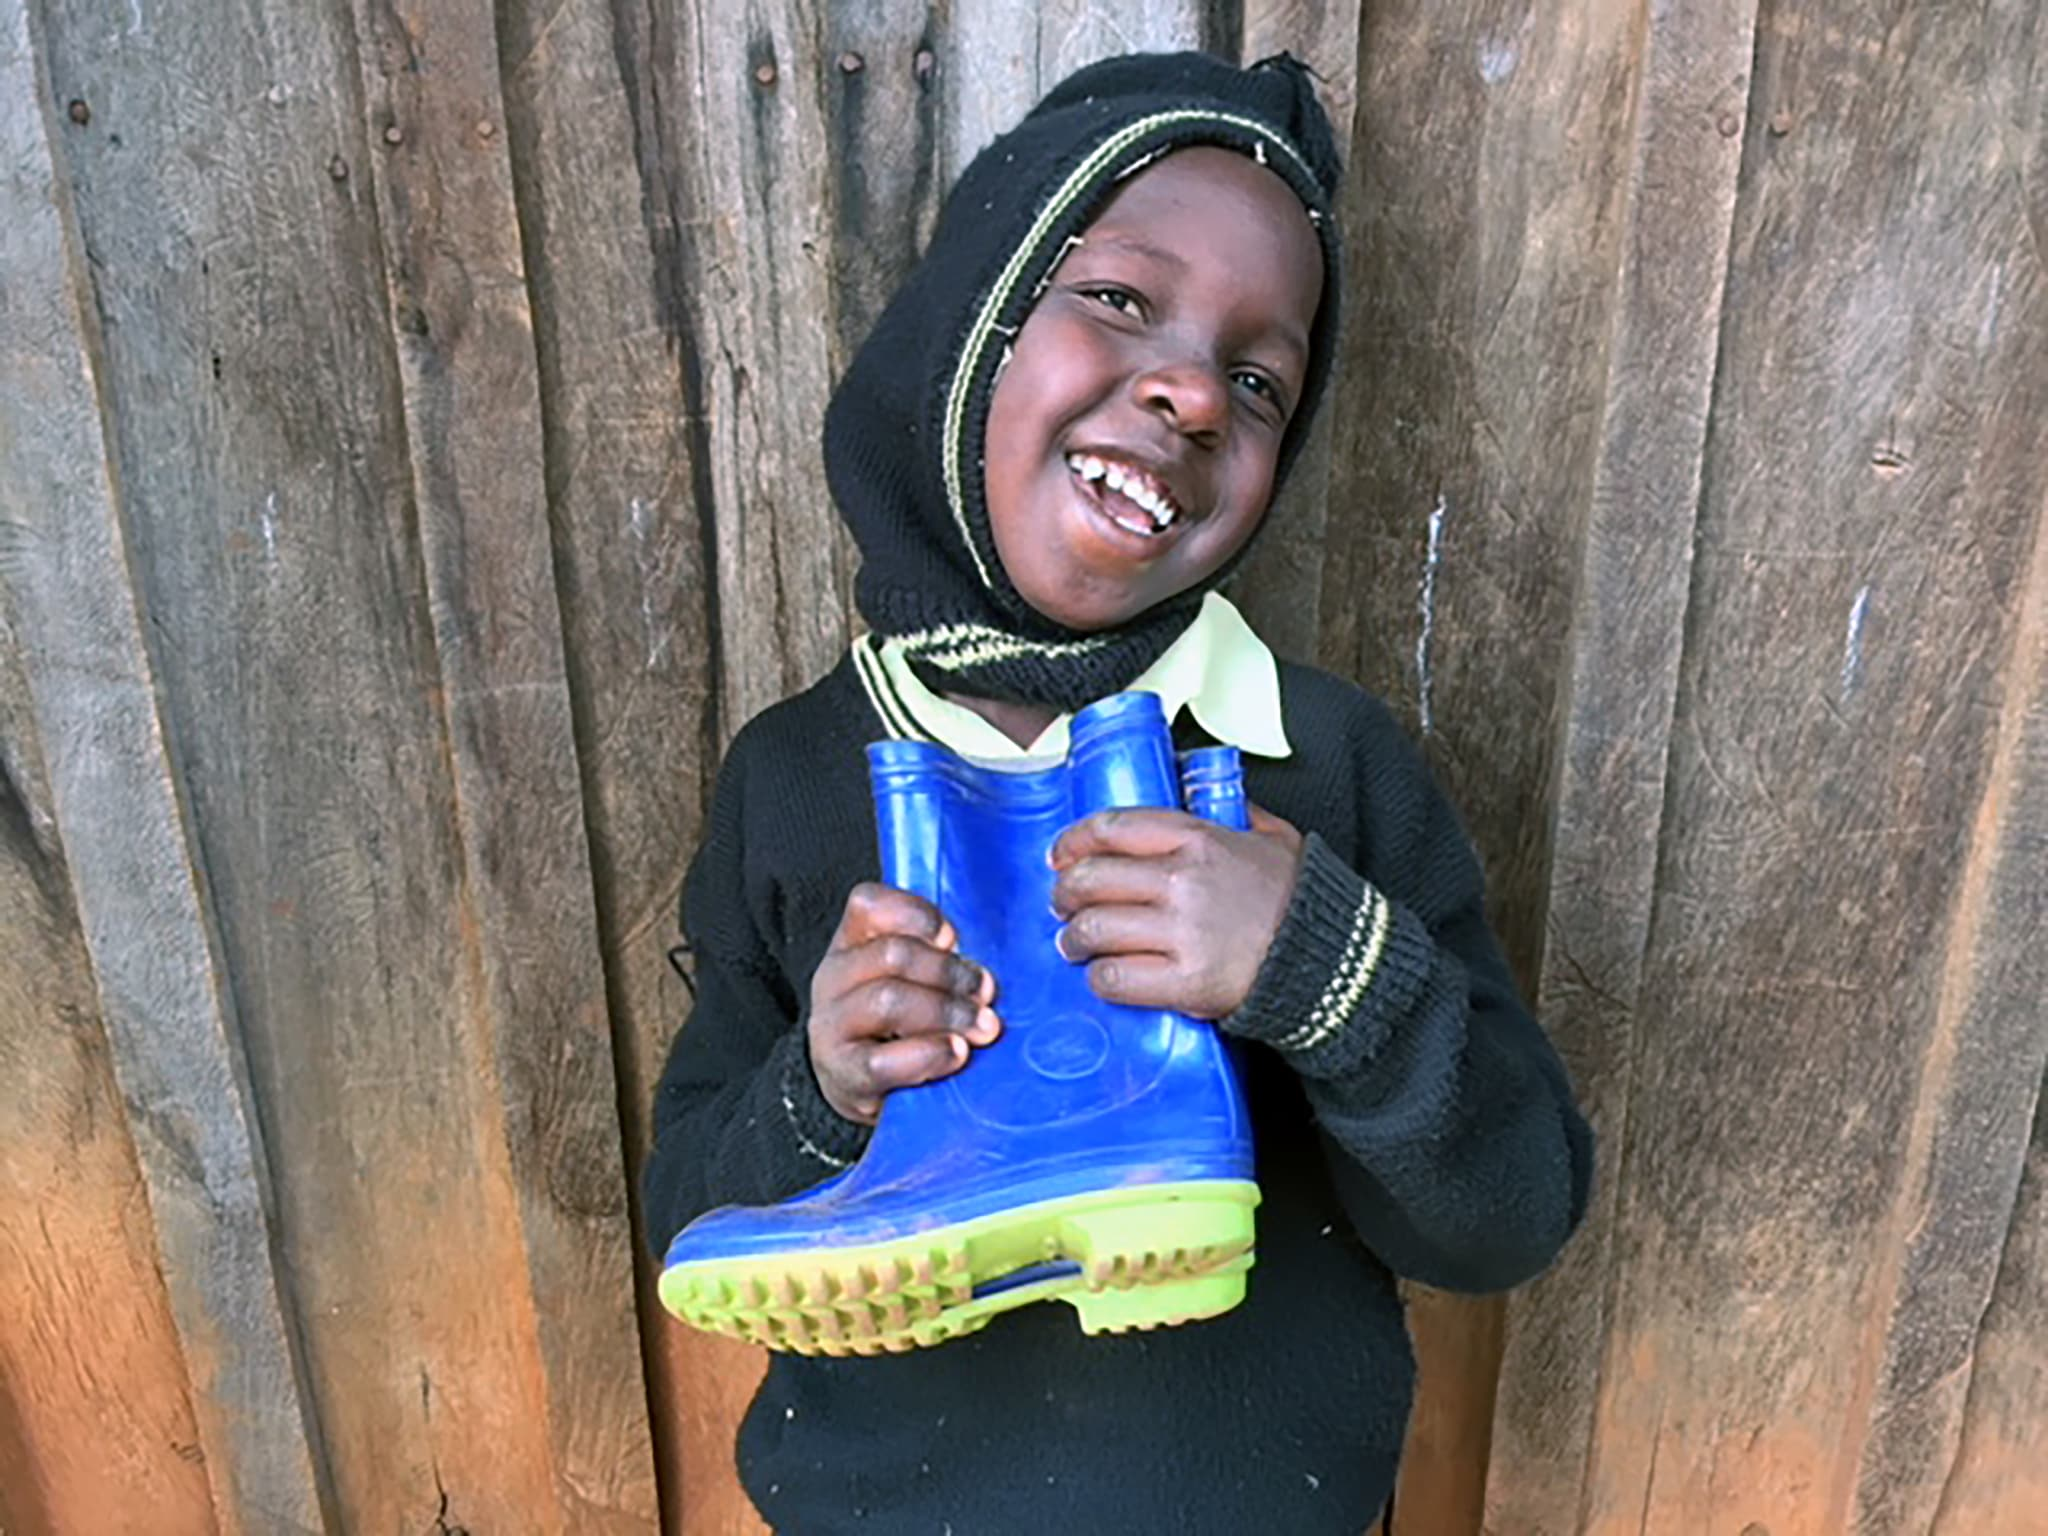 A boy receiving clothing and boots at Kagaani Primary School.